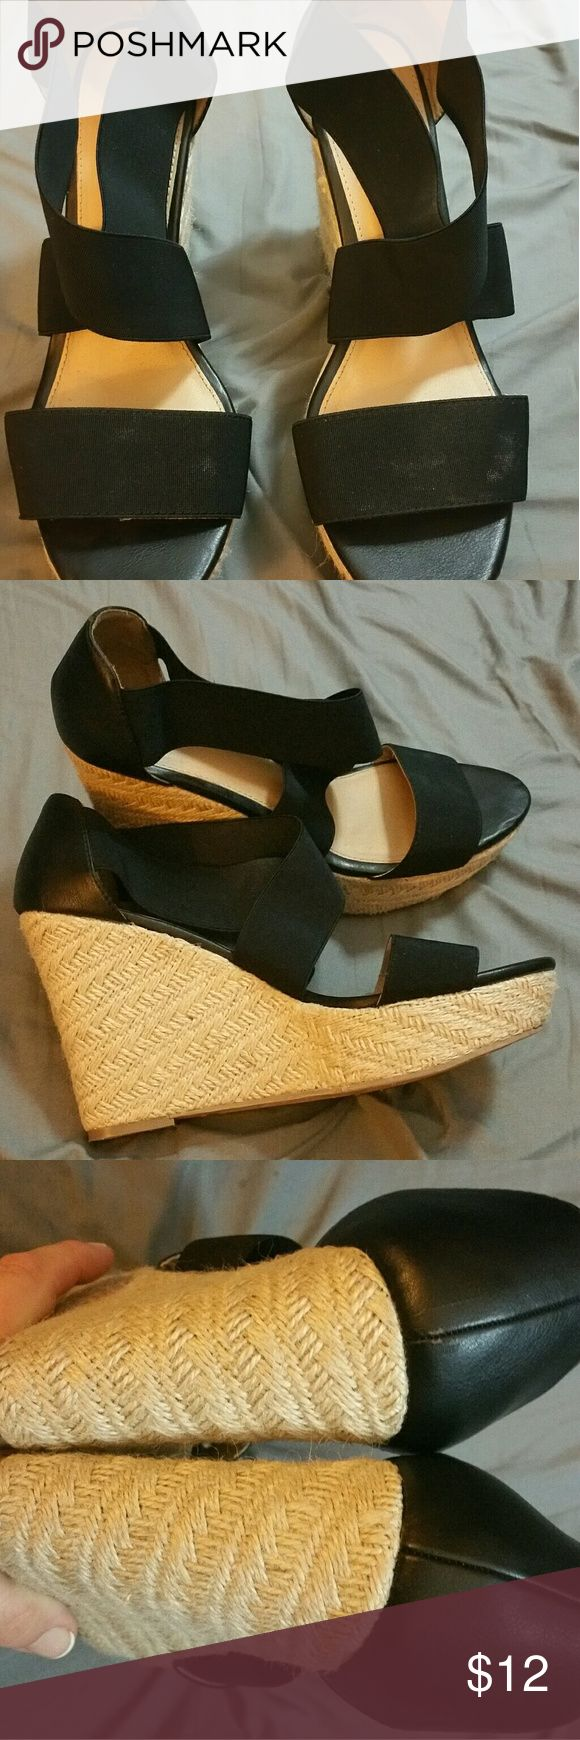 Black Wedge sandals Like new condition. Worn once and they killed my feet over the toes. Smoke free home. Mossimo Supply Co. Shoes Wedges